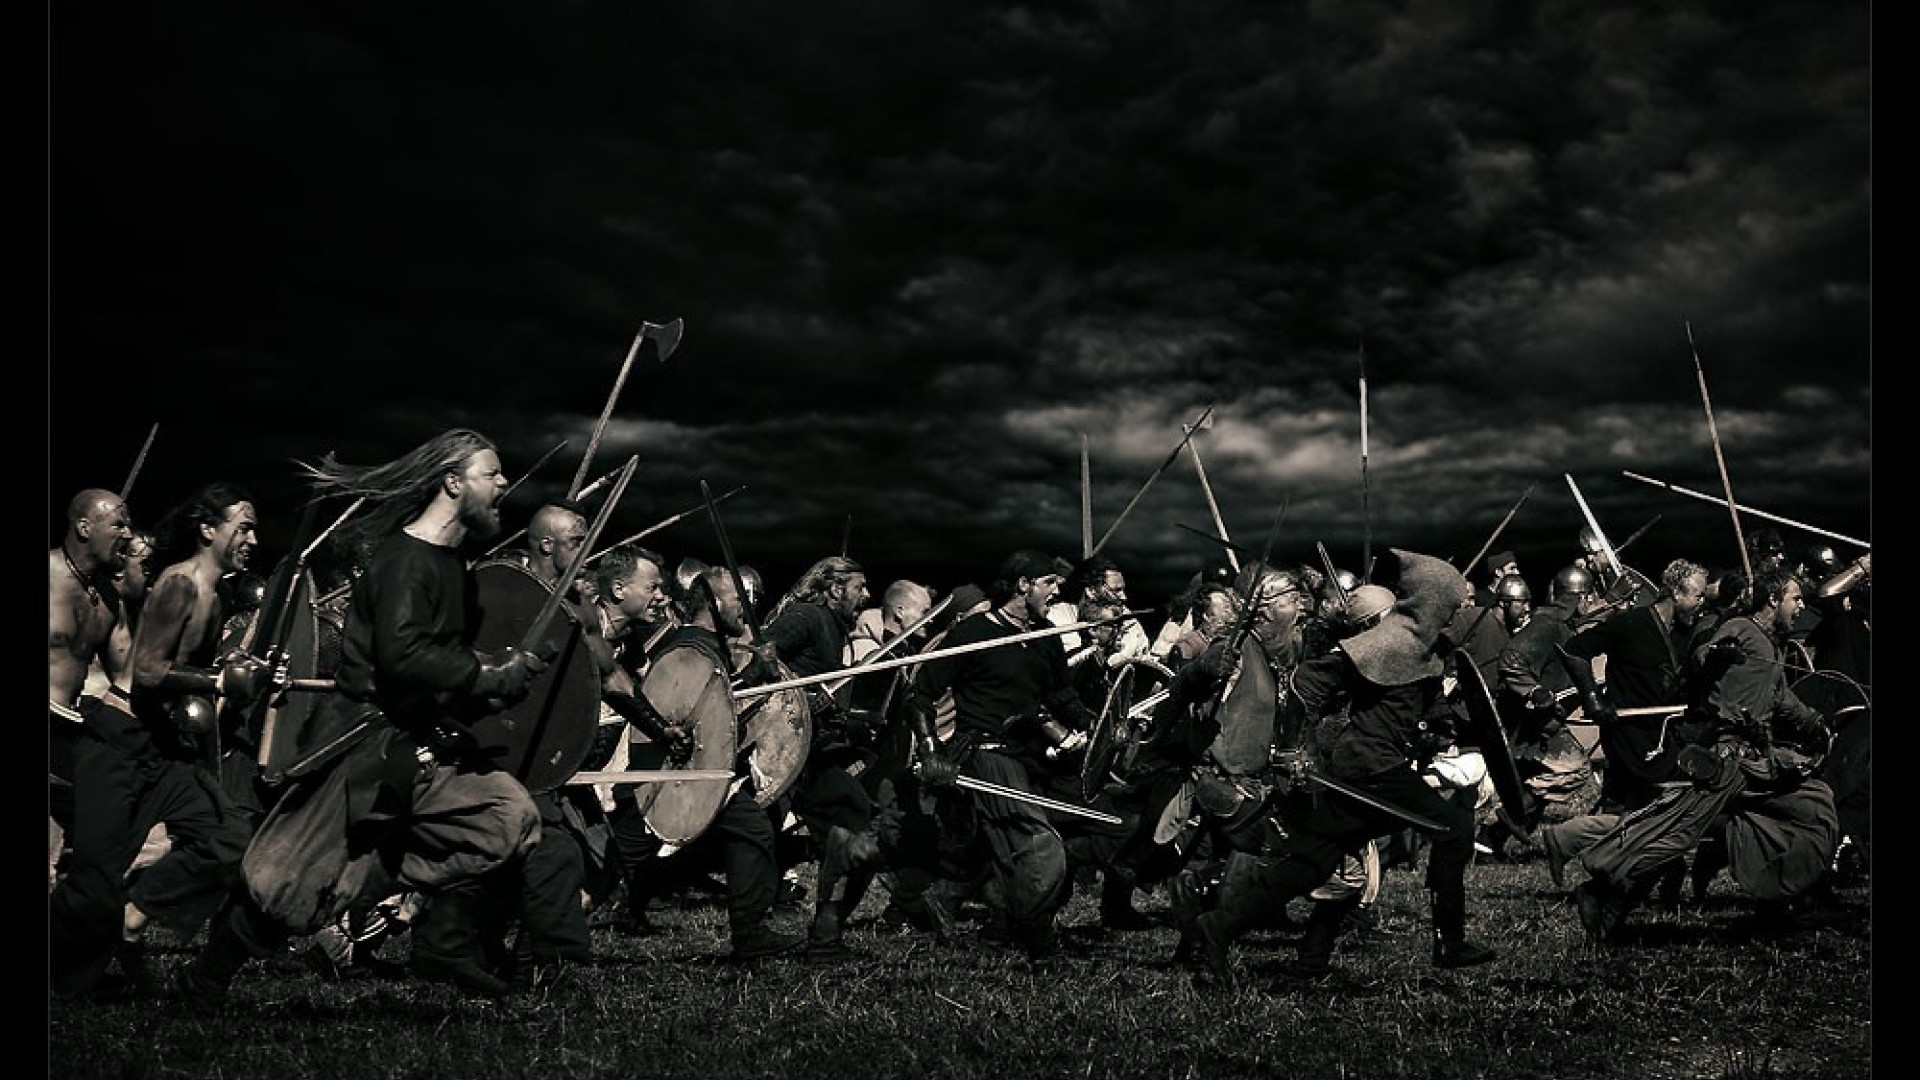 Skarin Viking Battle Asgard Vikings Wallpaper For Desktop Mosh Pit Black Metal 1920x1080 Download Hd Wallpaper Wallpapertip